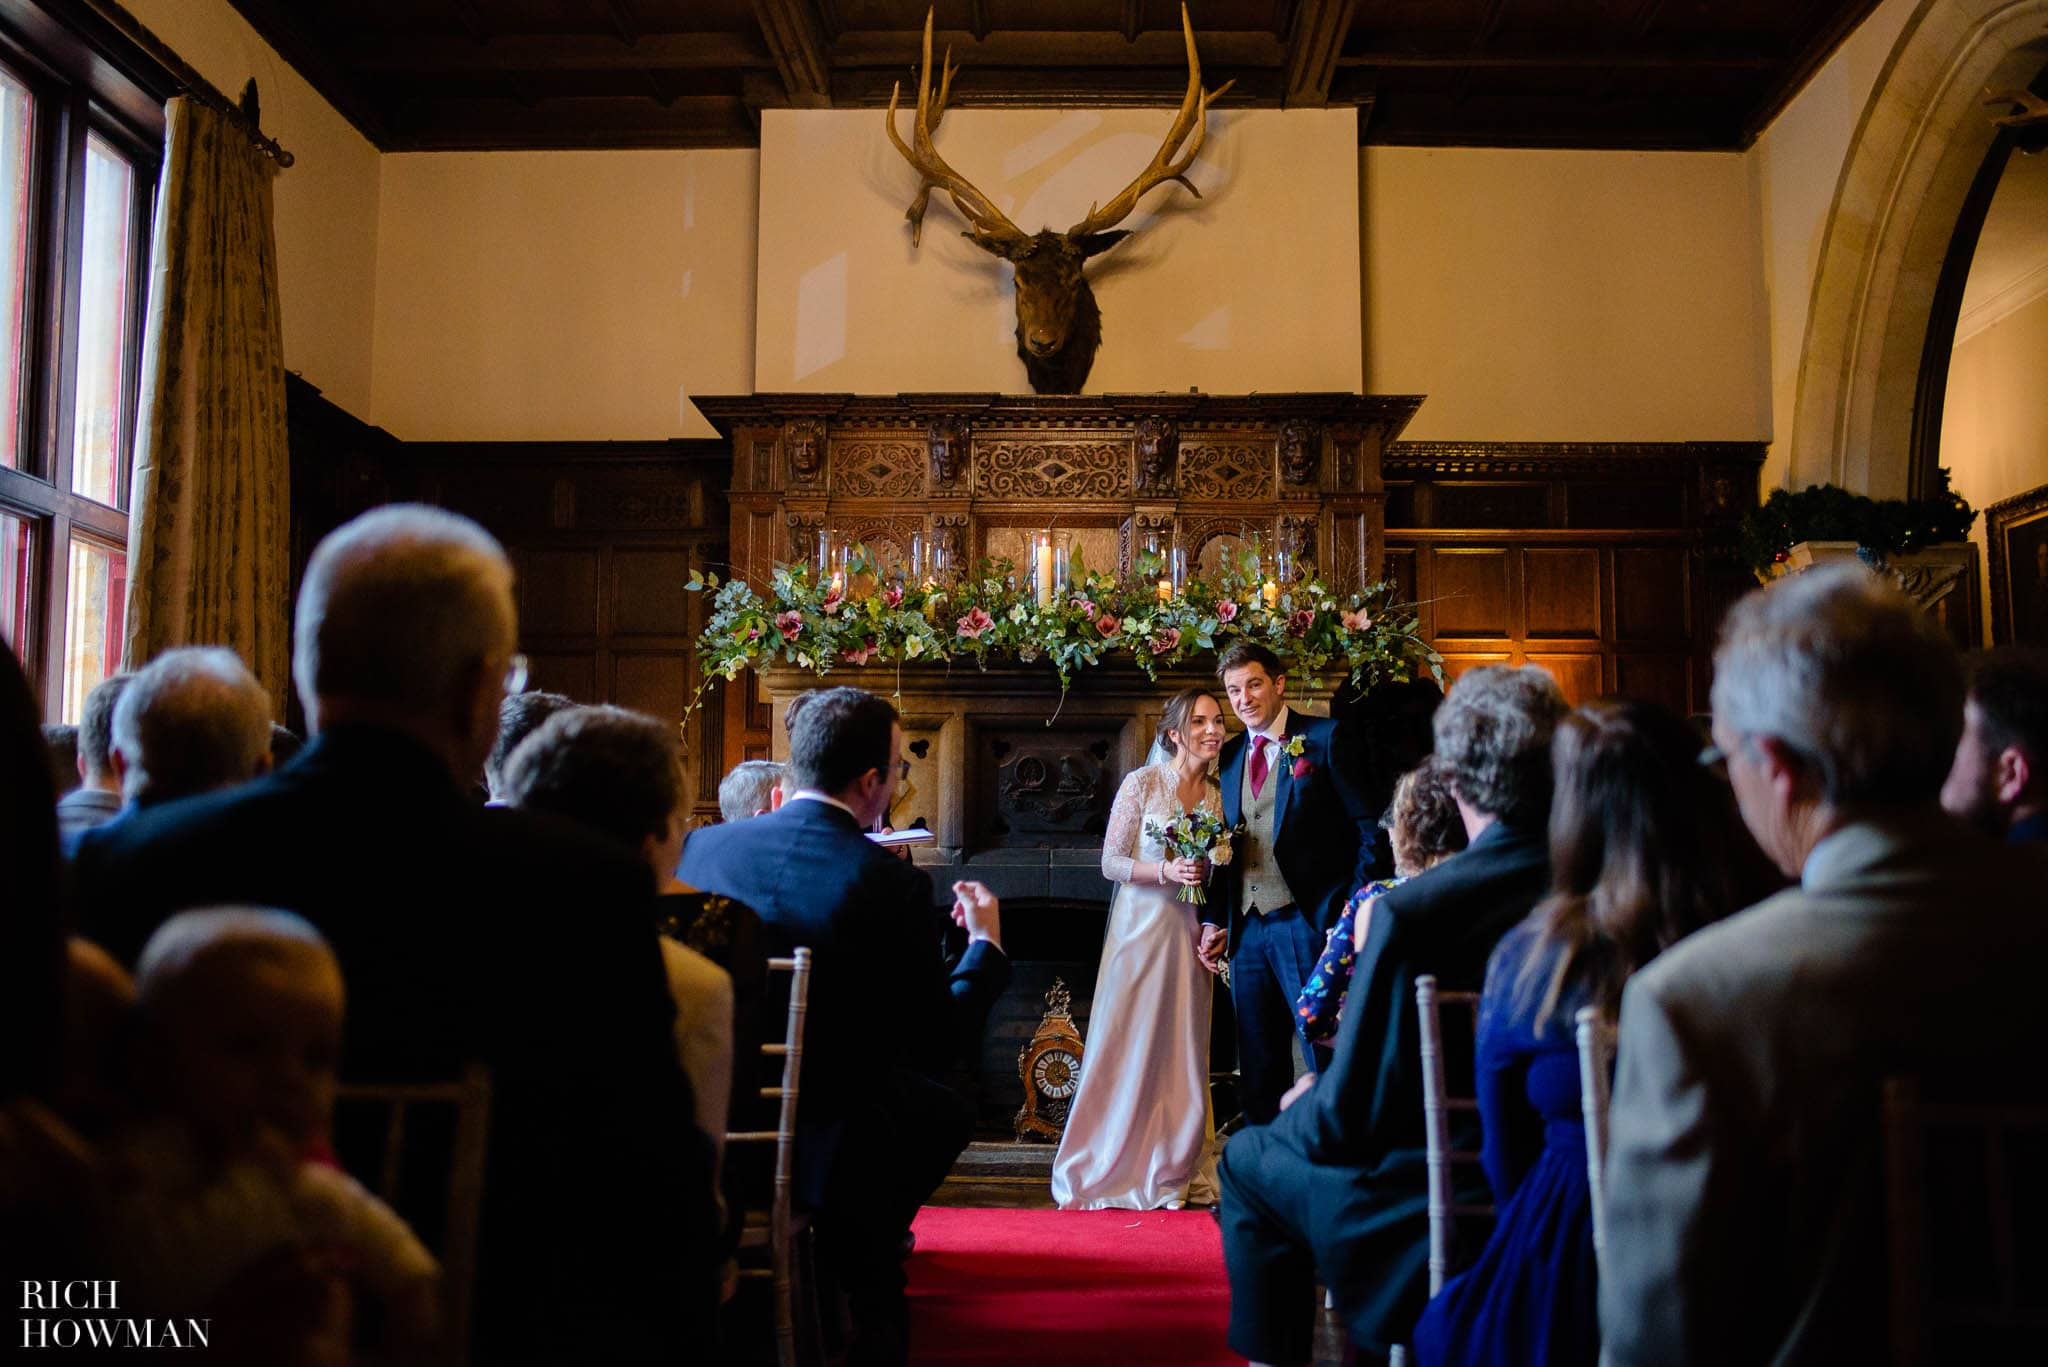 The great hall at Huntsham Court wedding photographed by Rich Howman